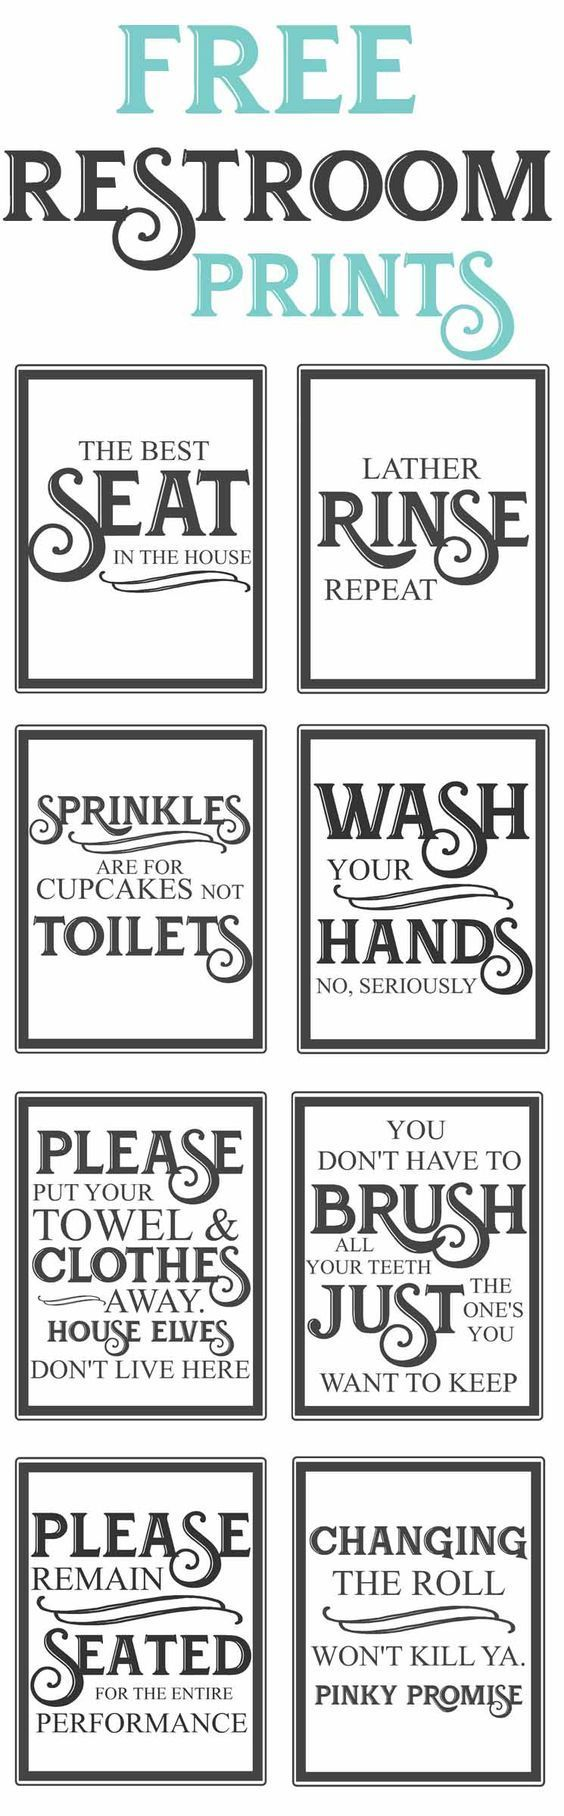 Free Vintage inspired bathroom printables-funny quotes to hang up in the restroom-farmhouse